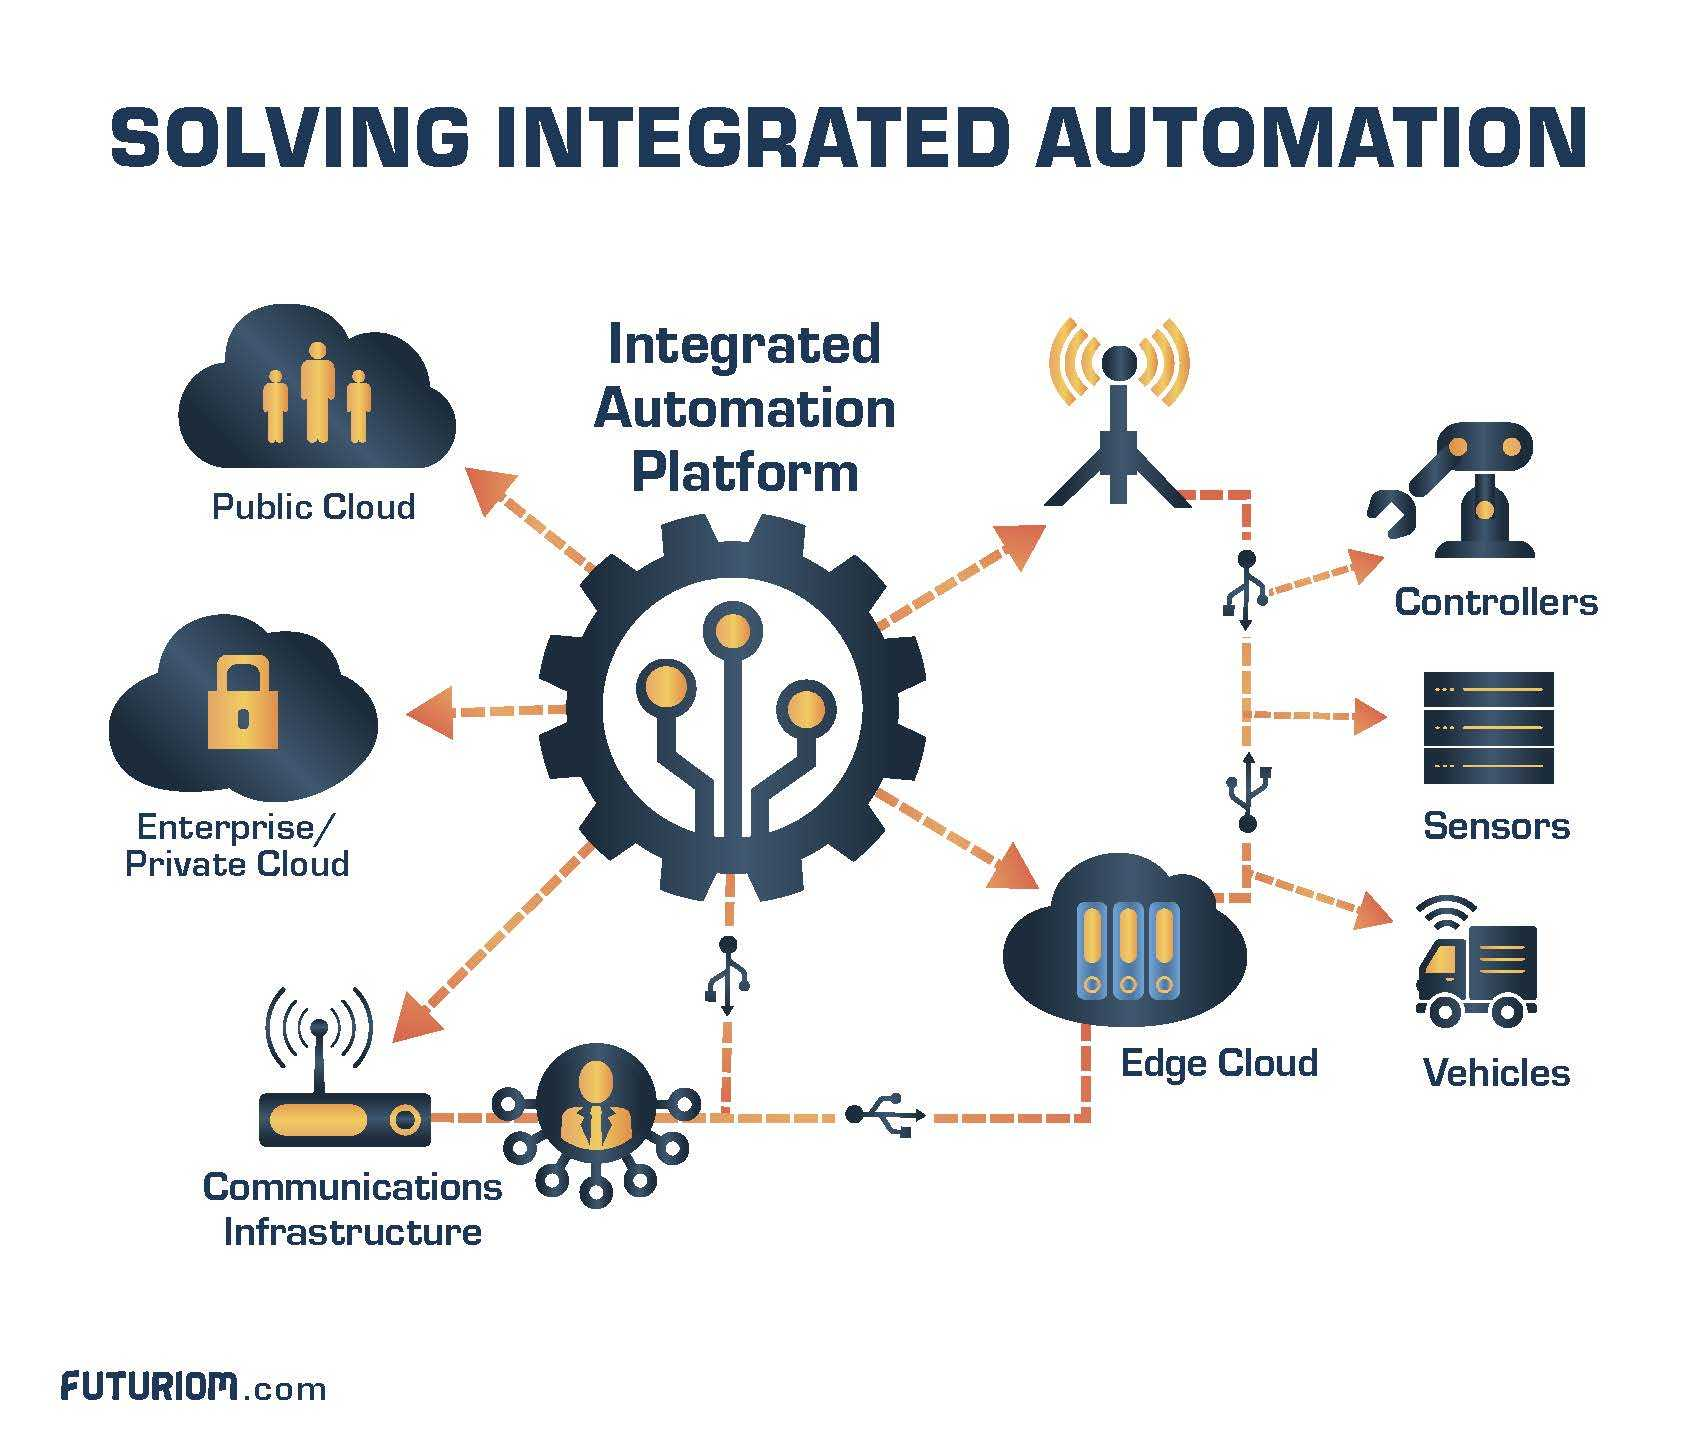 Solving Integrated Automation graphic 12 23 19